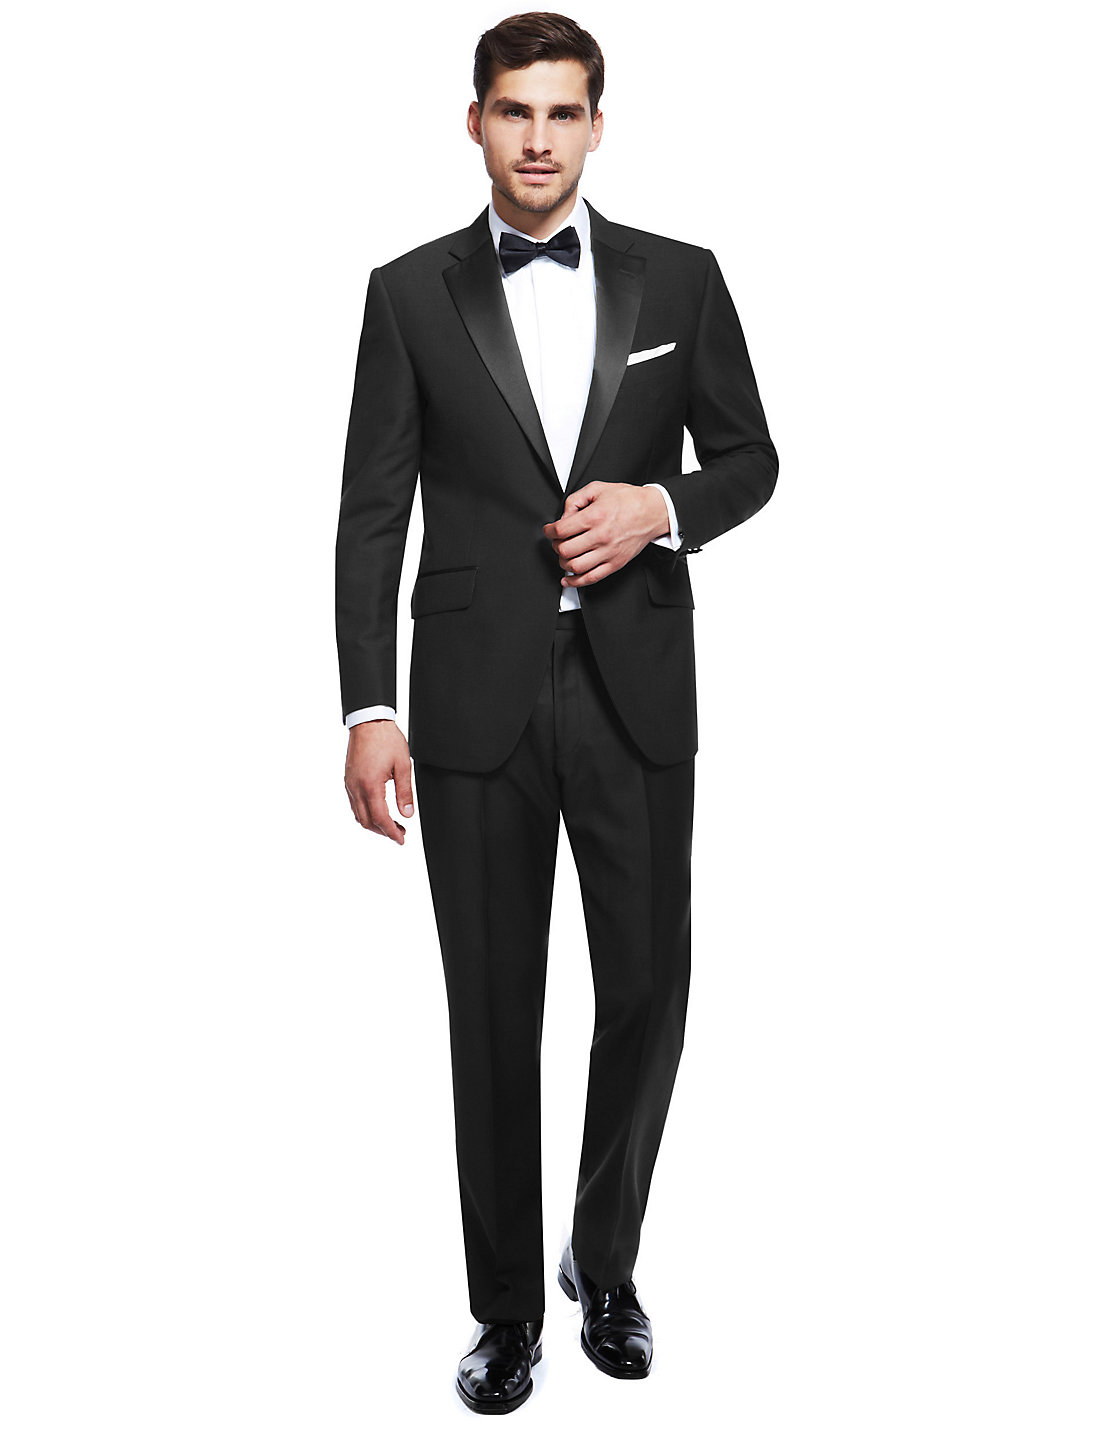 M&S Black Tie Dinner Suit